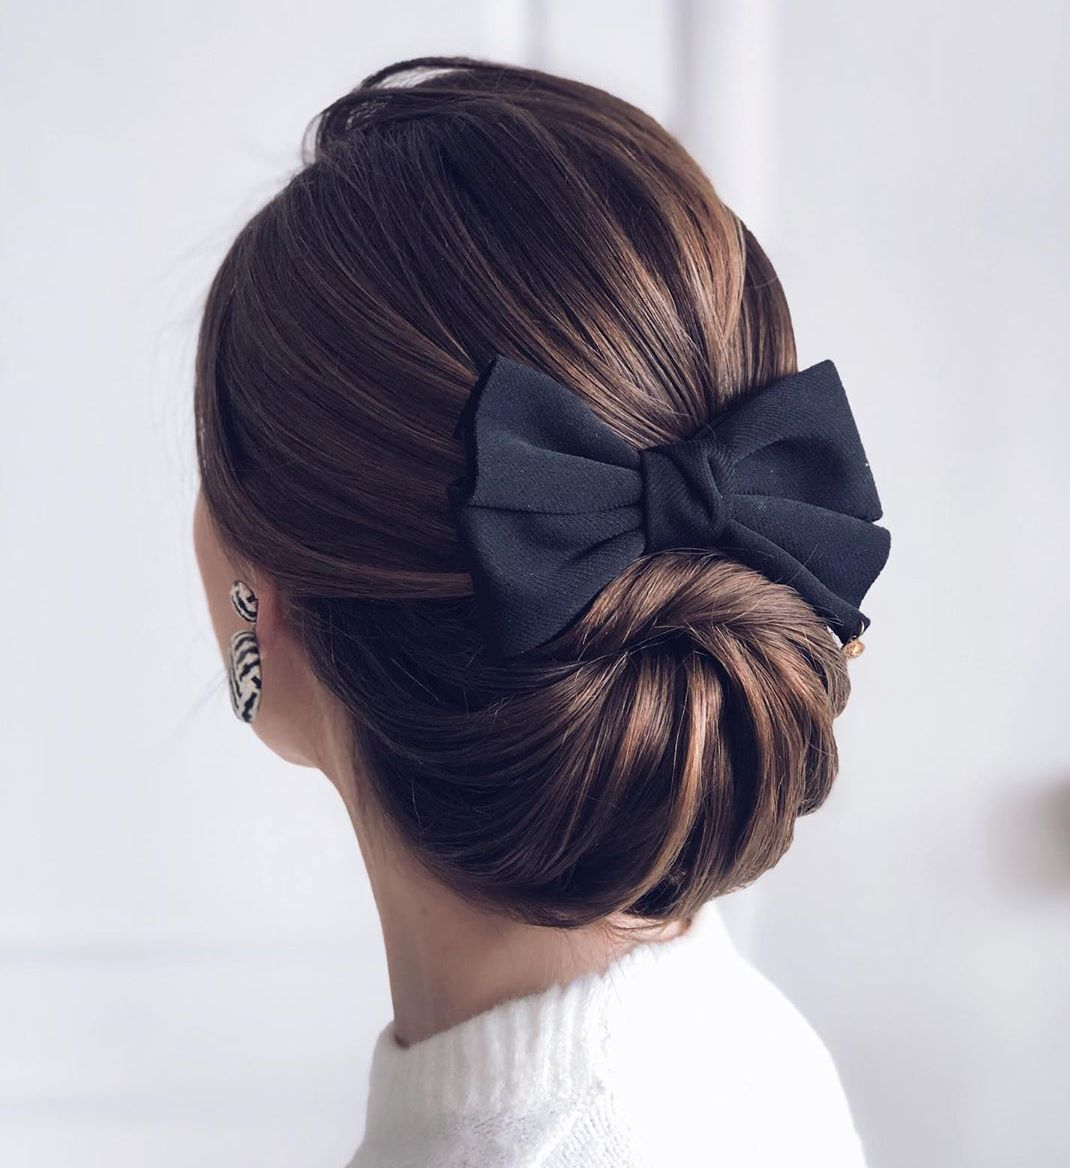 Classic Low Wrap Updo for Women with Long Hair